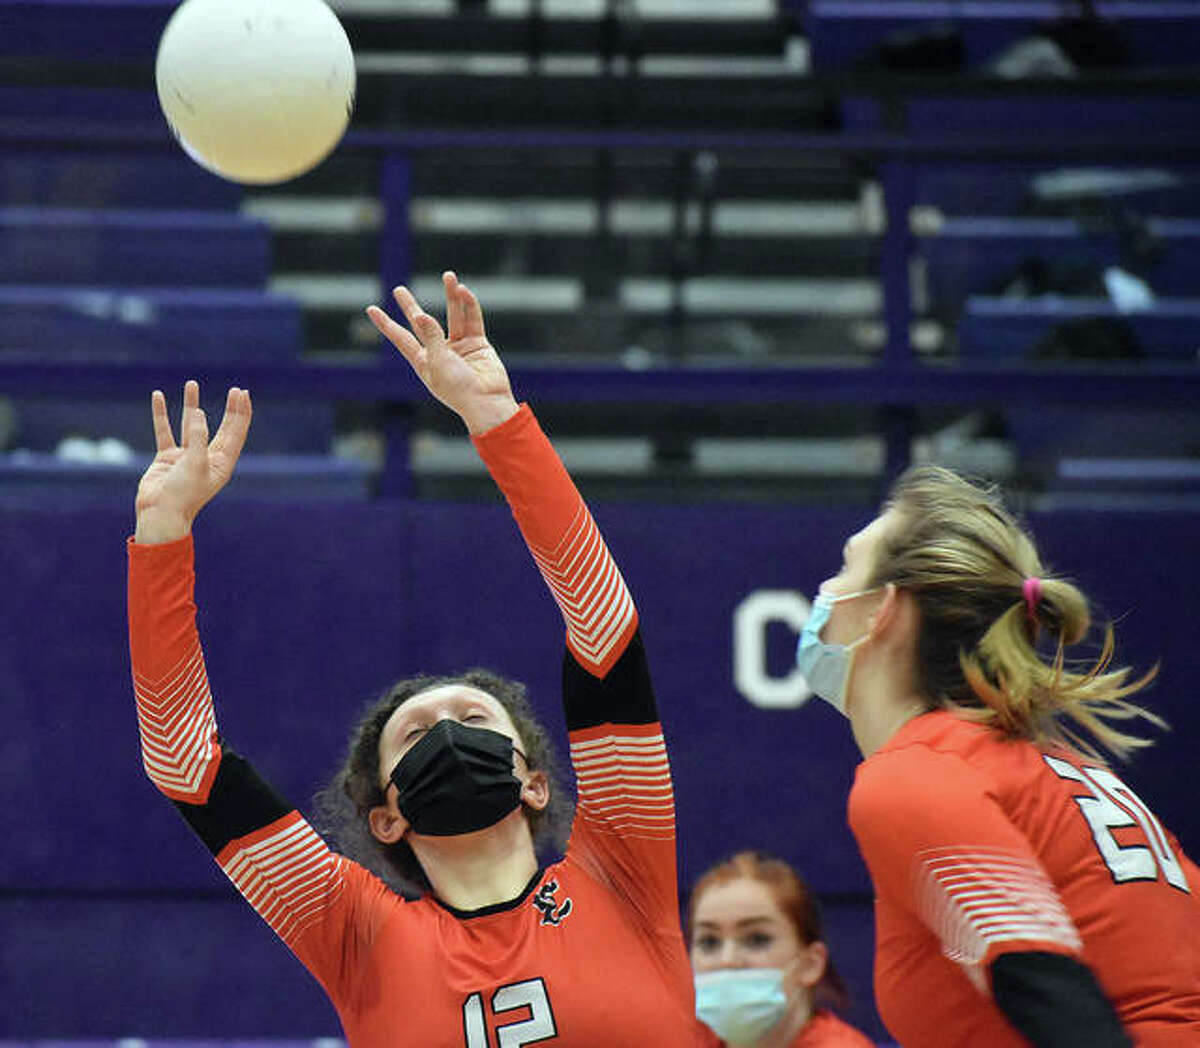 Edwardsville's Morgan Tulacro, left, sets a pass for teammate Storm Suhre on Thursday.